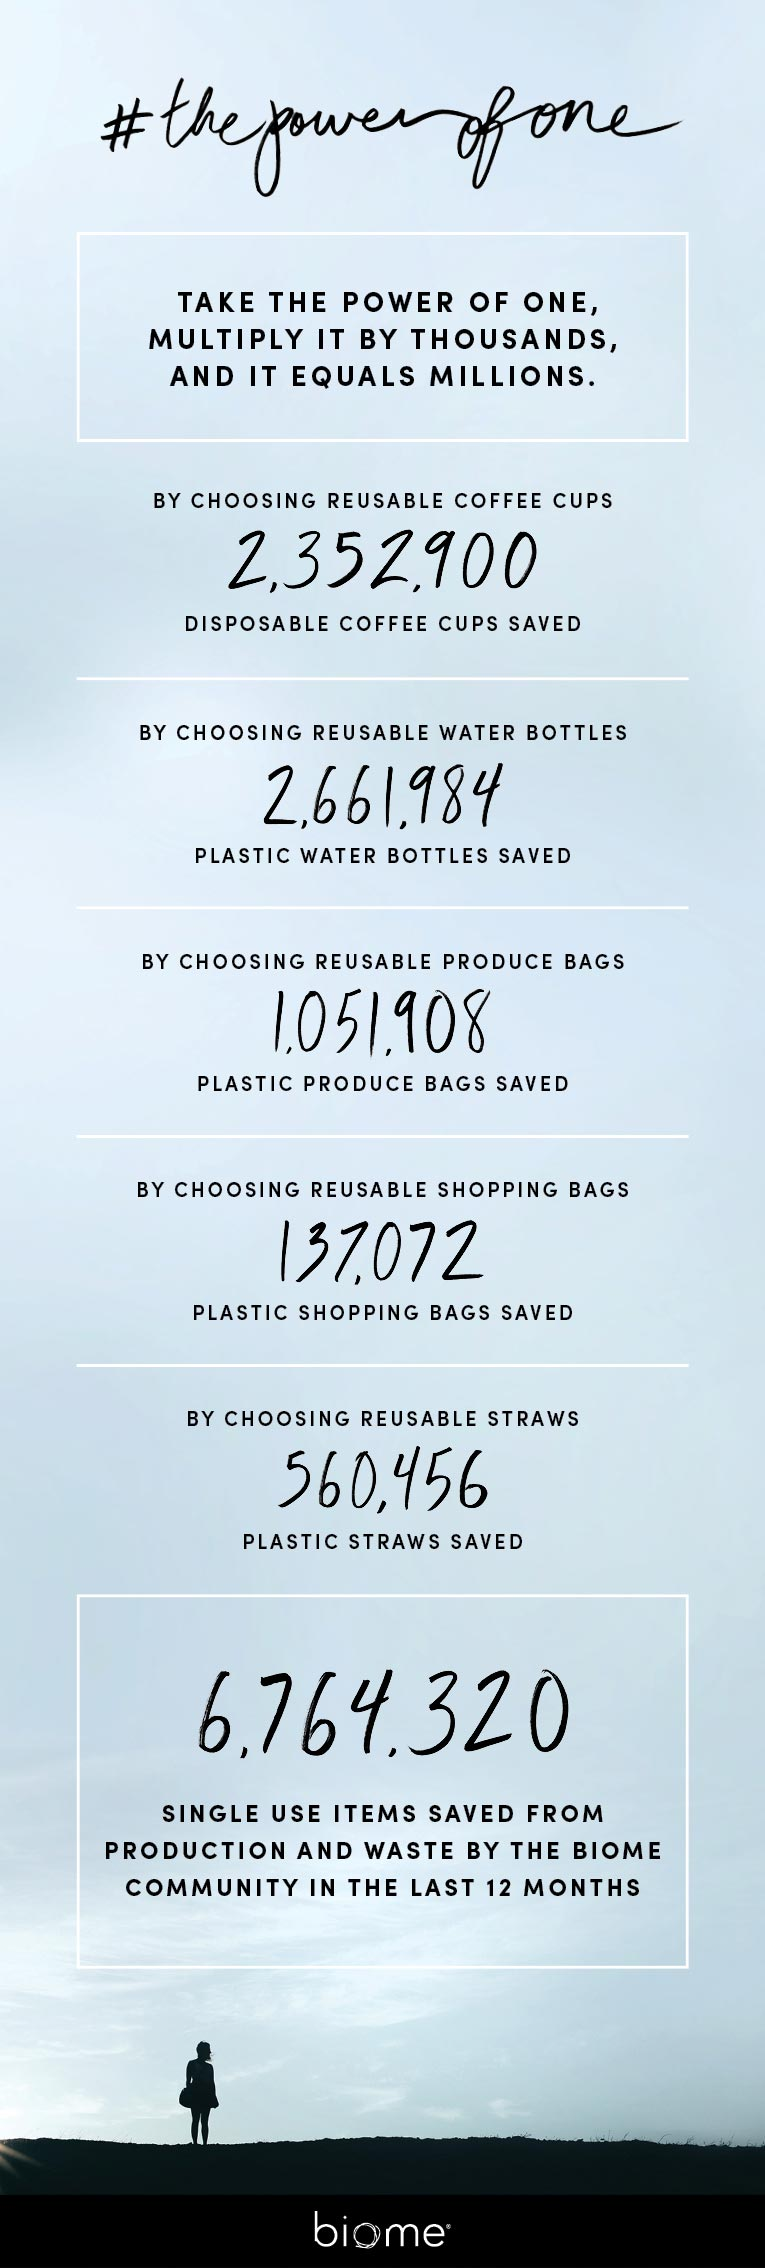 #thepowerofone biome infographic detailing the number of products biome has saved by biome